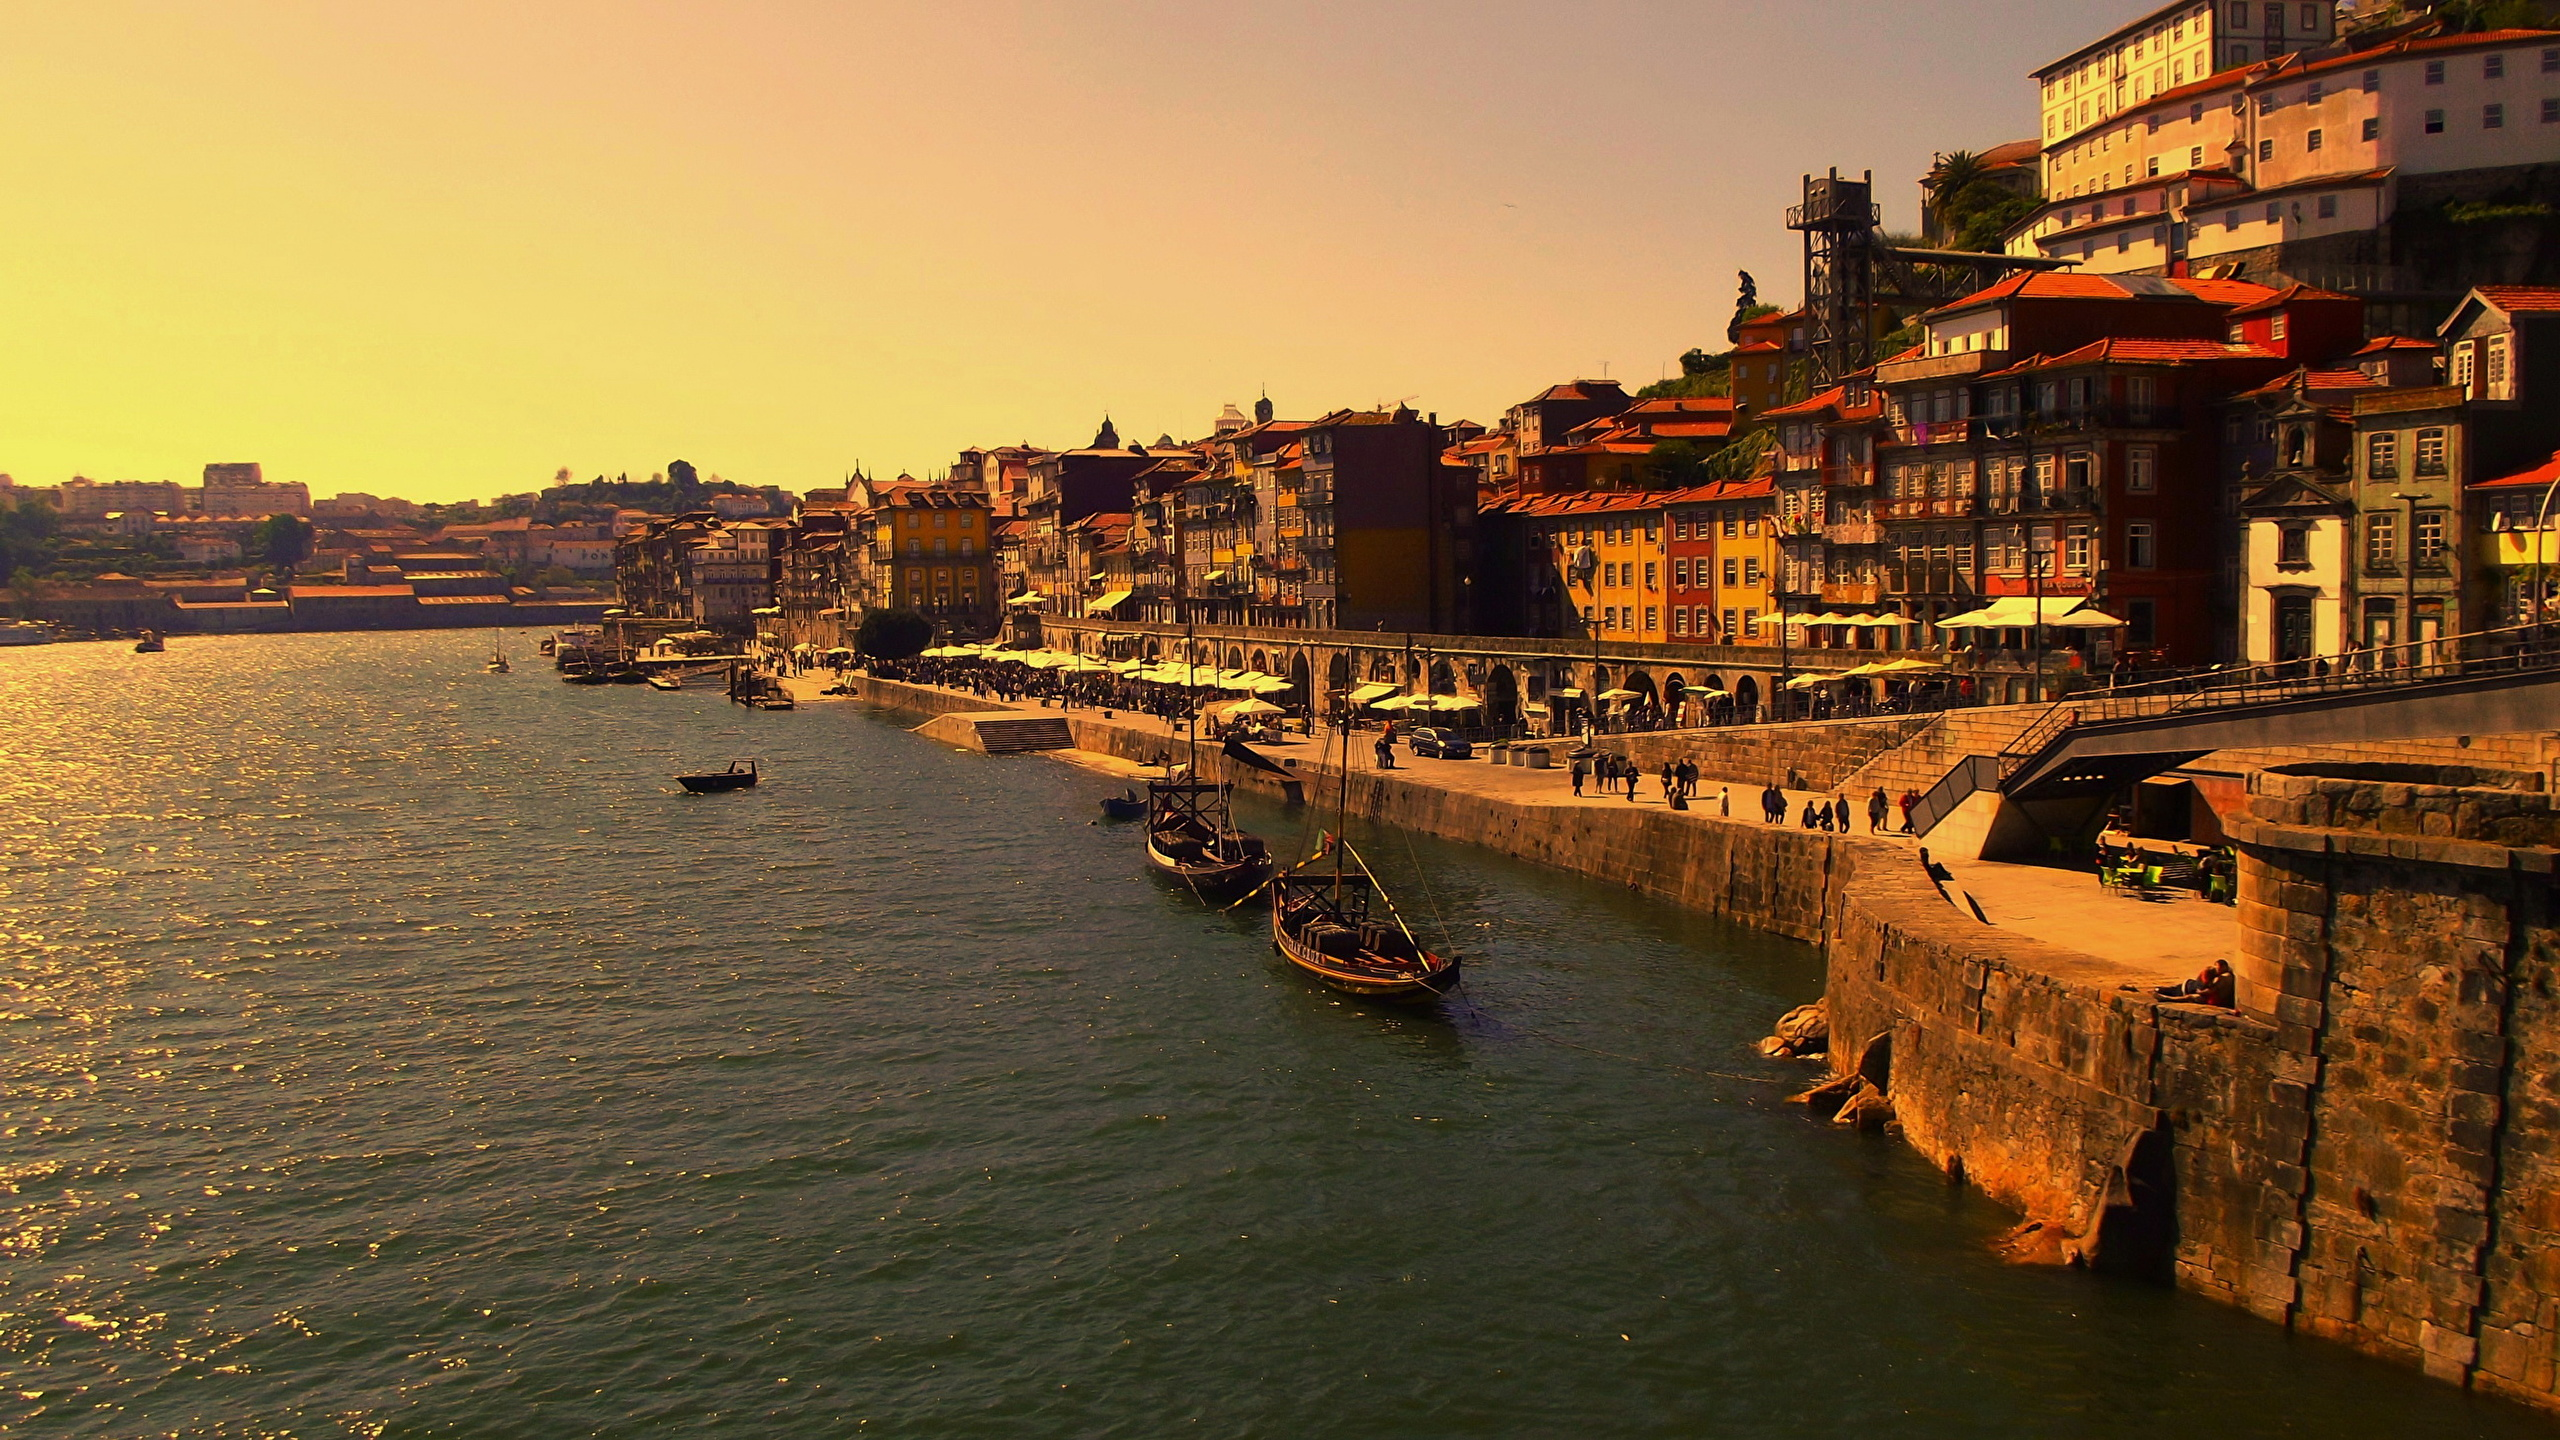 Desktop Wallpapers Oporto Portugal Vinho do Porto Coast 2560x1440 2560x1440